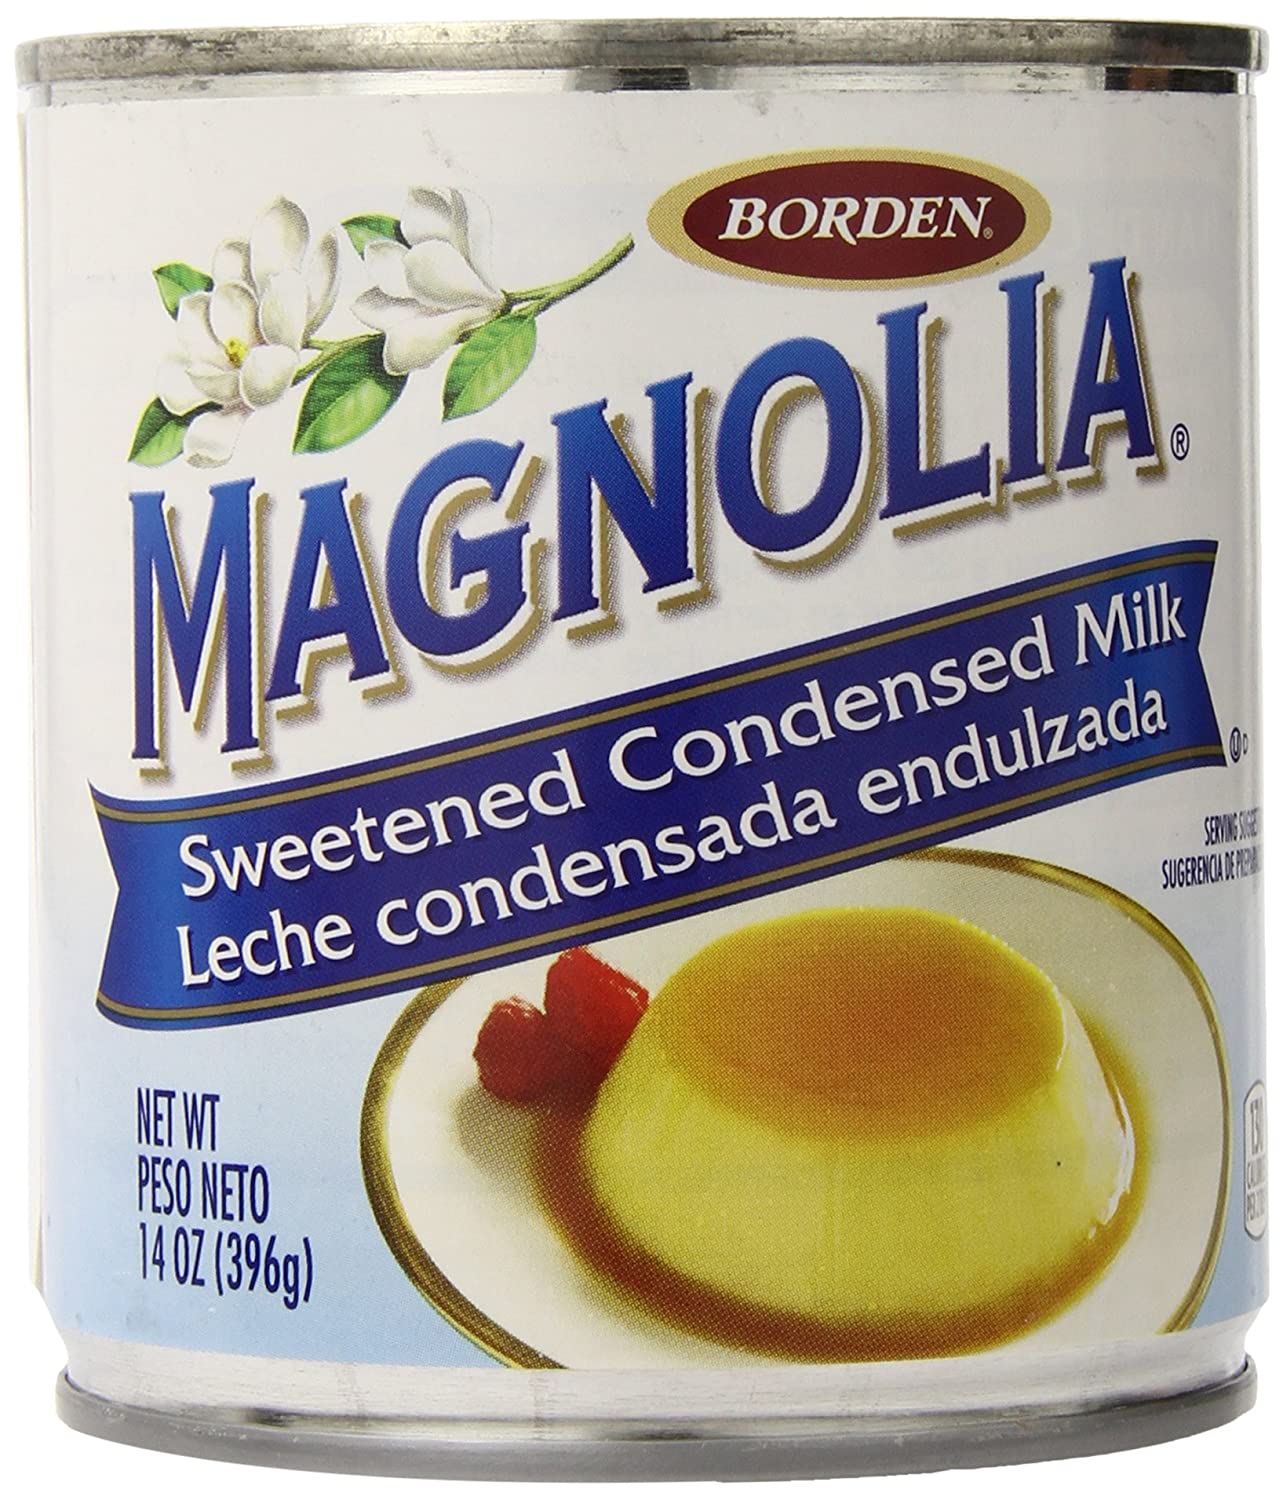 Magnolia Sweetened Condensed Milk, 14 Ounce (Pack of 24)